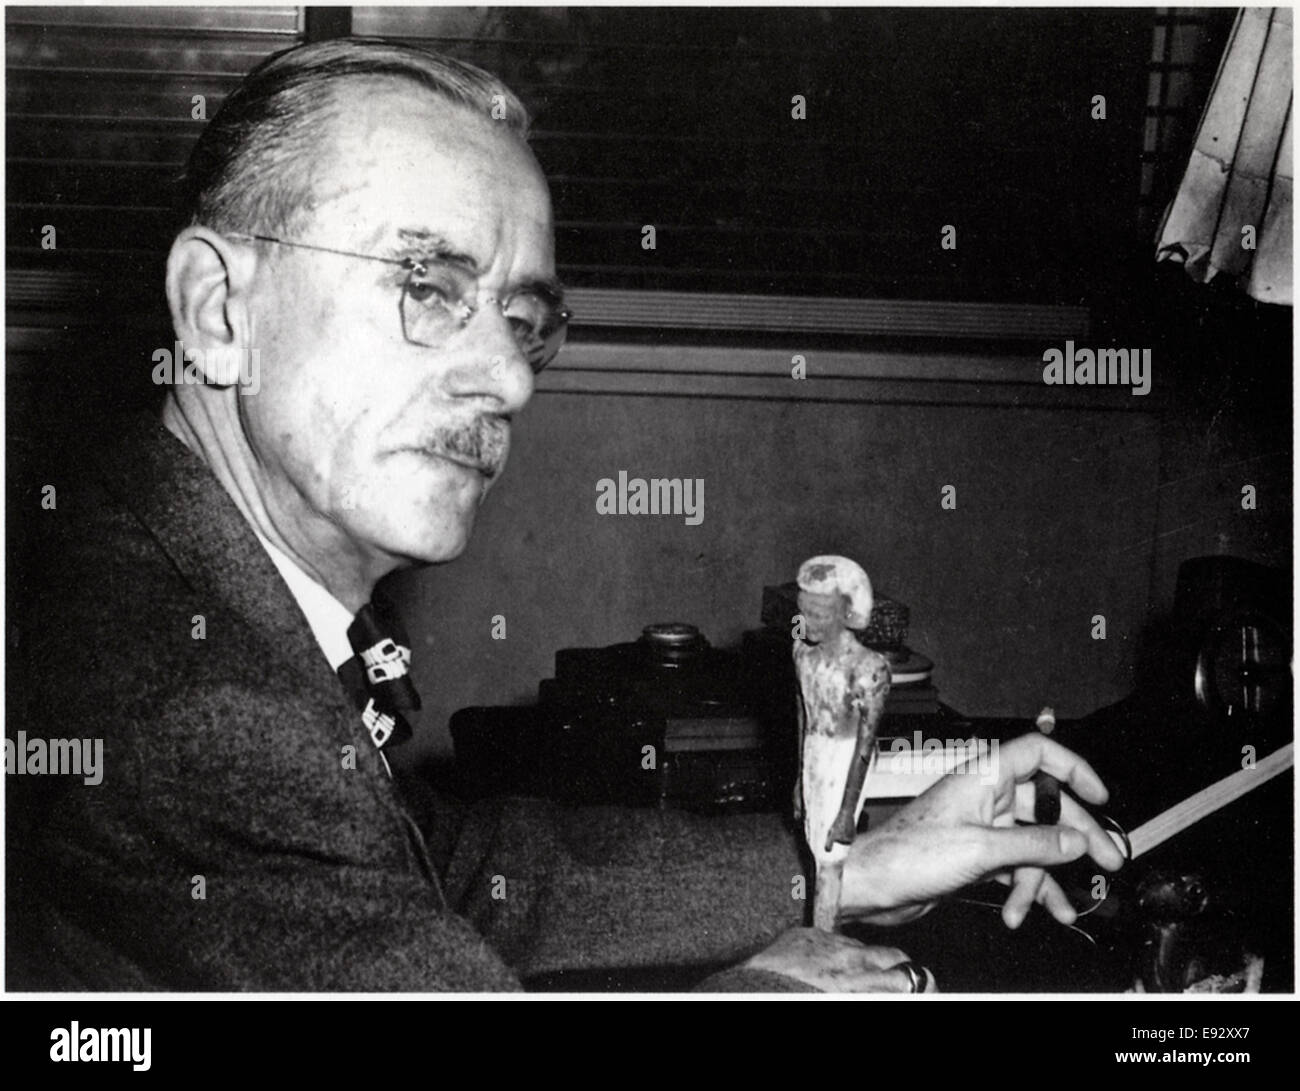 Thomas Mann (1875-1955), German Novelist, Portrait, circa 1940's - Stock Image